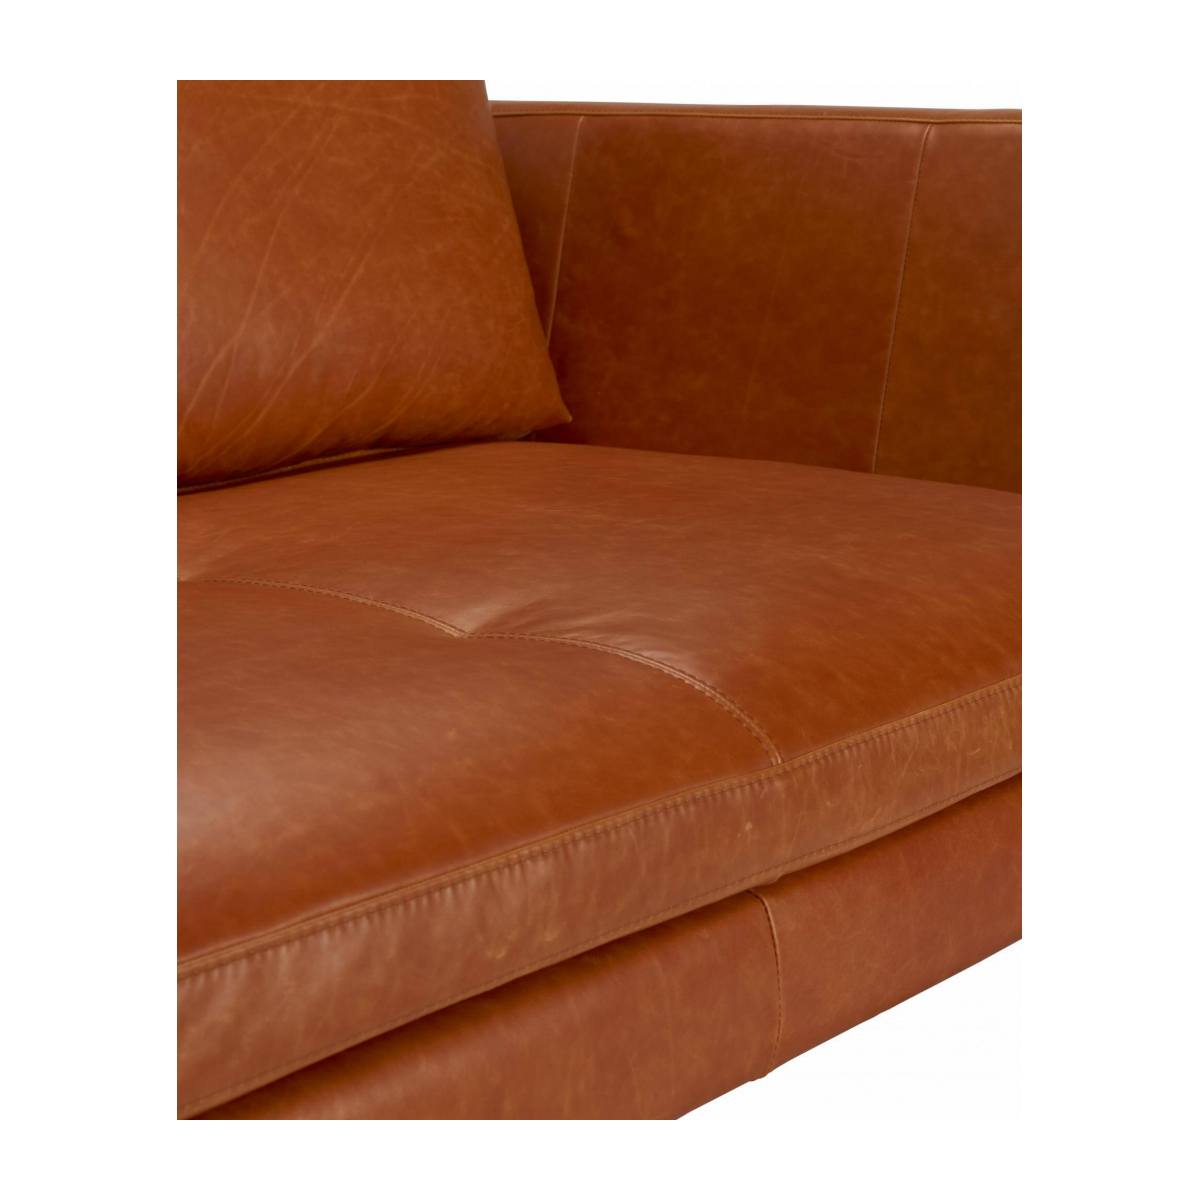 2 seater sofa in Vintage aniline leather, old chestnut n°9